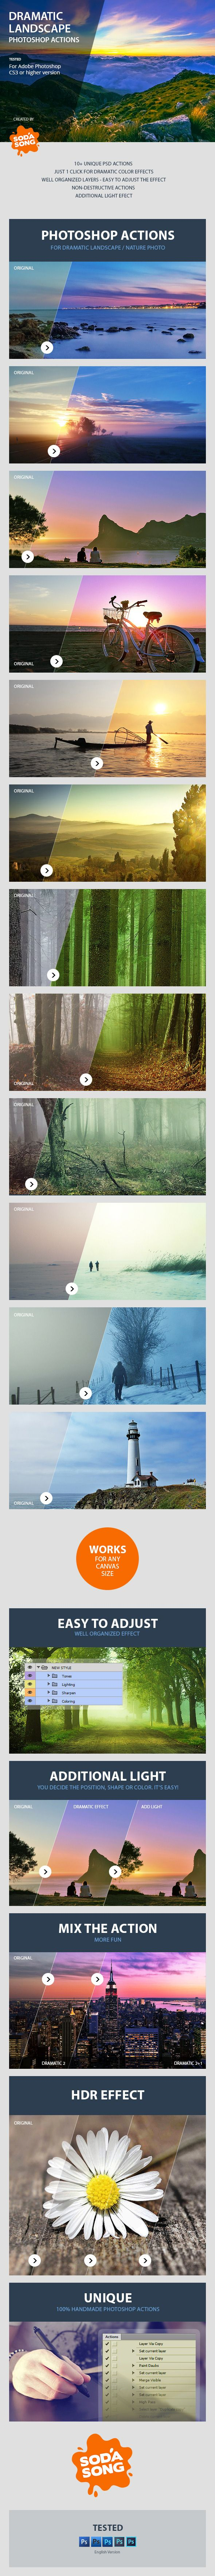 Dramatic Landscape Photoshop Actions Photo Effects #actions Download: http://graphicriver.net/item/dramatic-landscape-photoshop-actions/8527307?ref=ksioks